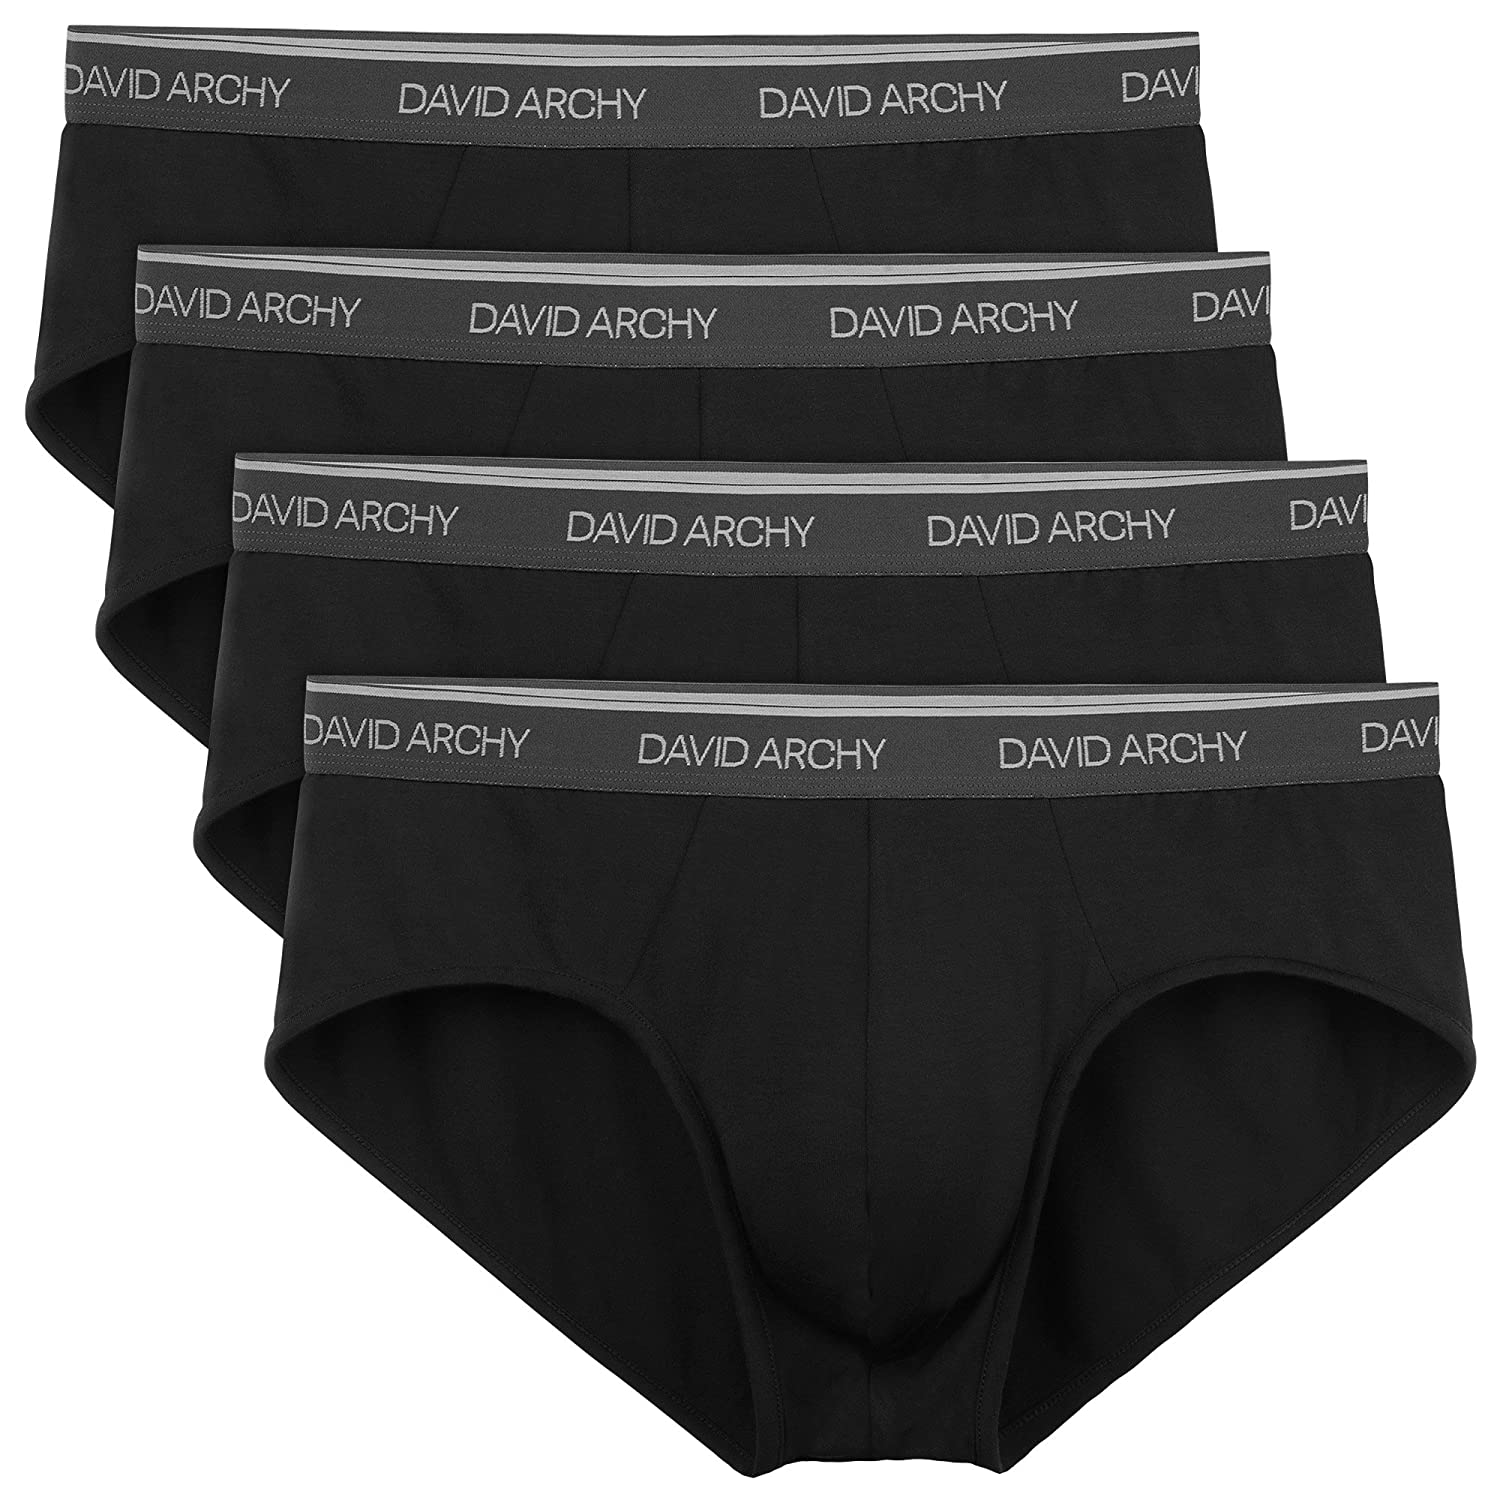 David Archy Men's 4 Pack Breathable Bamboo Rayon Briefs with Fly CN-Smashing